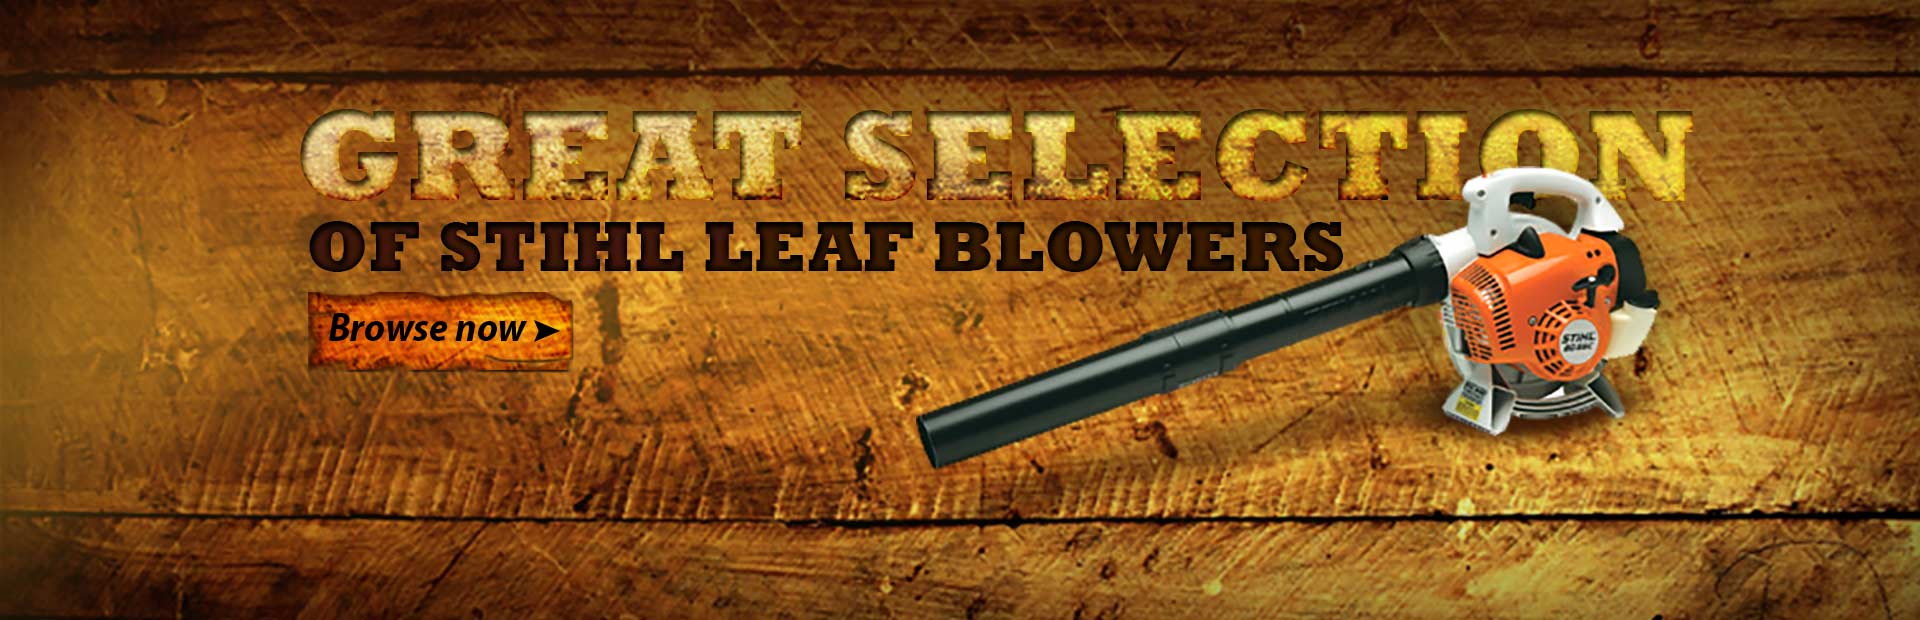 Click here to browse our great selection of STIHL leaf blowers.